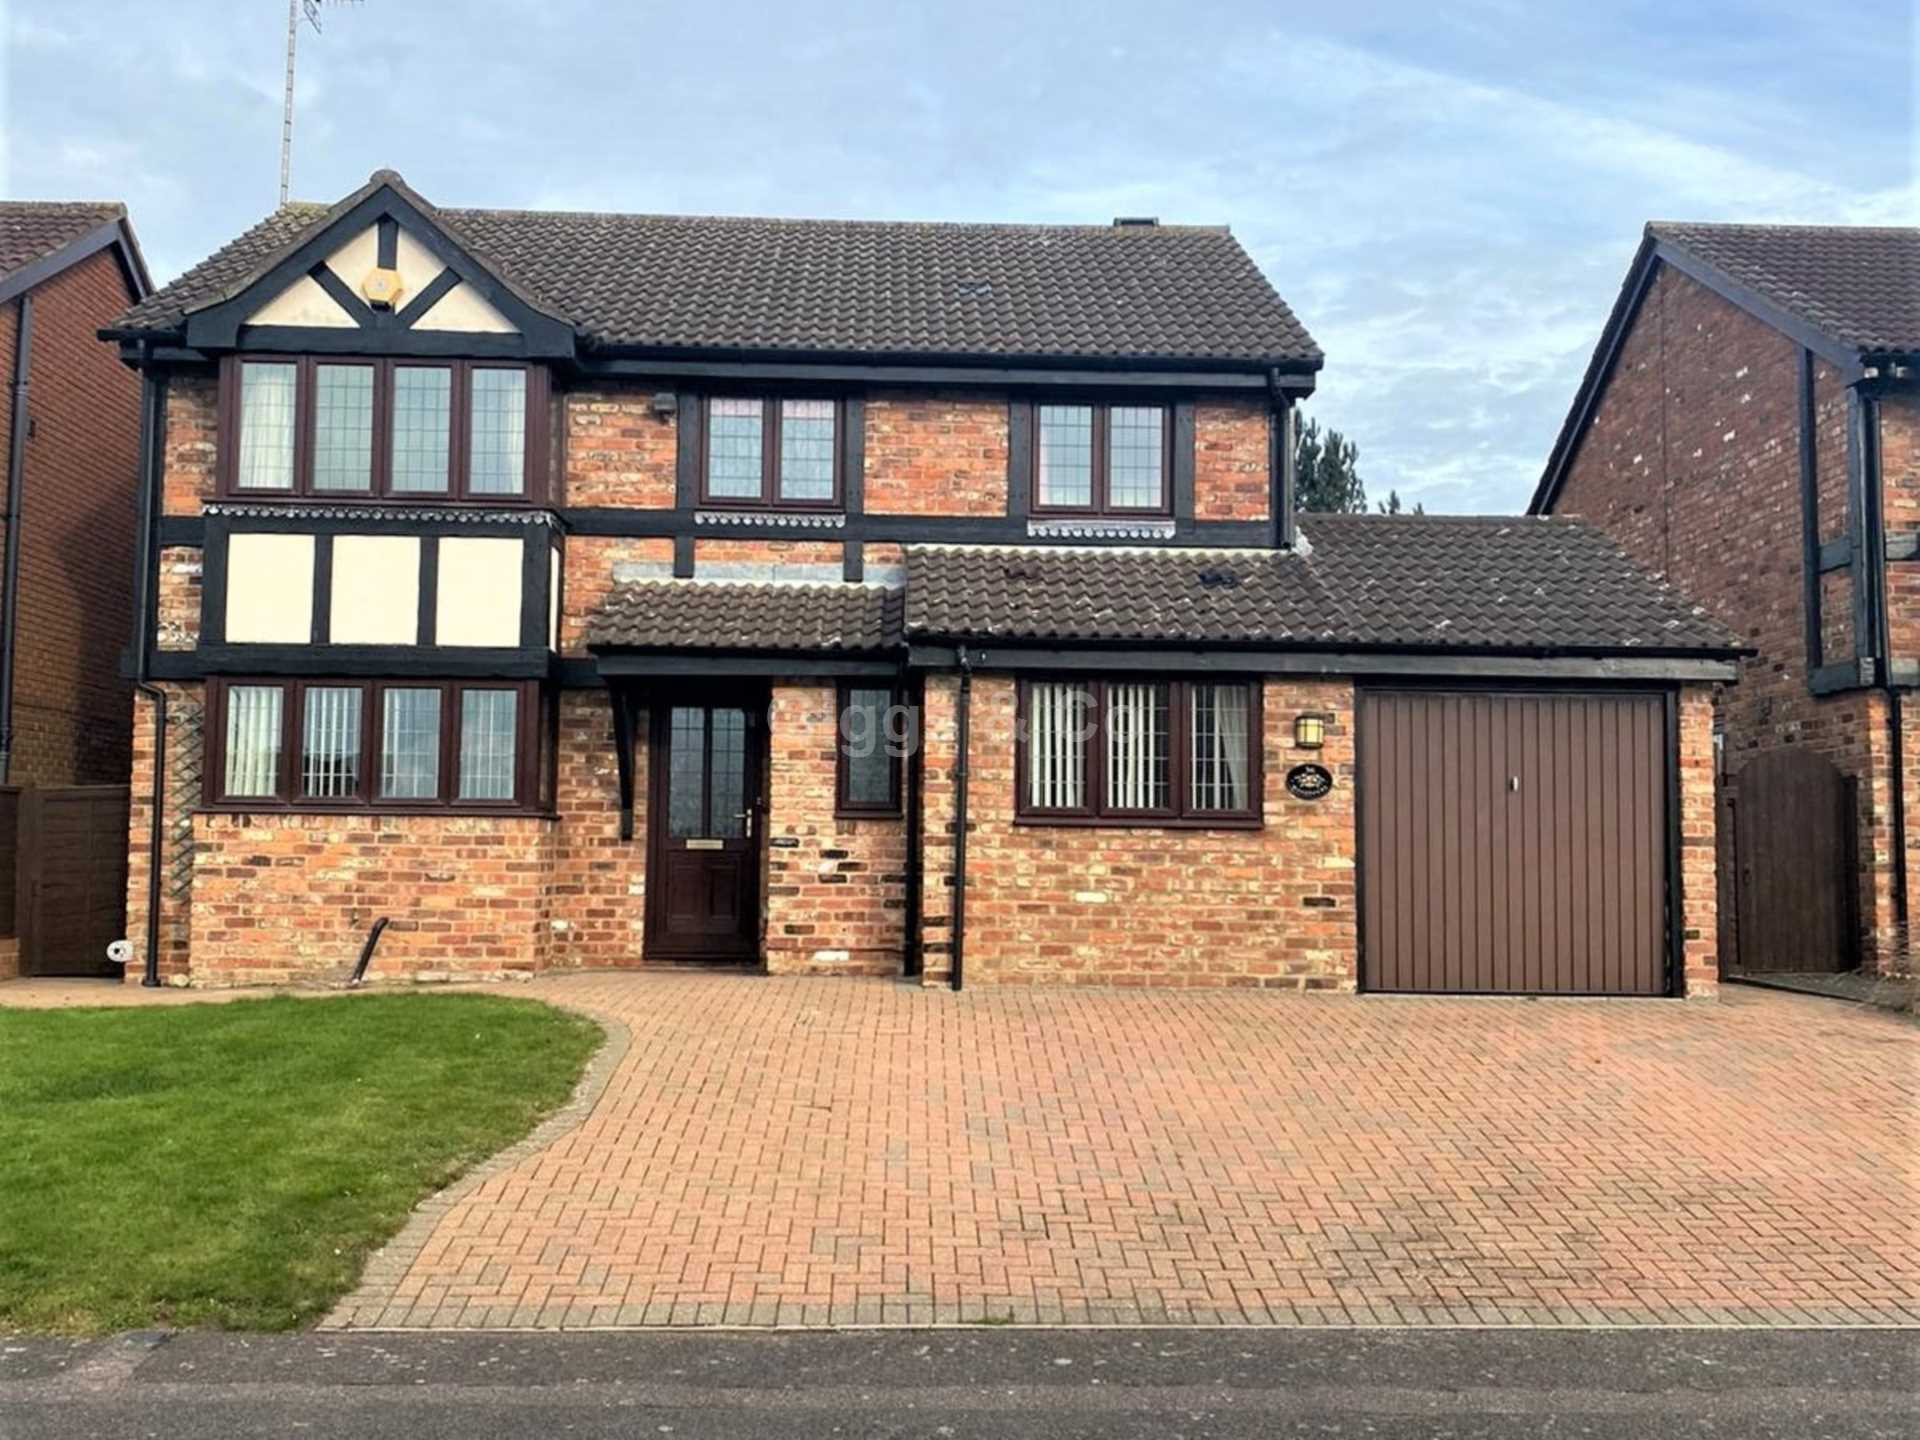 4 bed detached house to rent in Woodmere, Luton, LU3